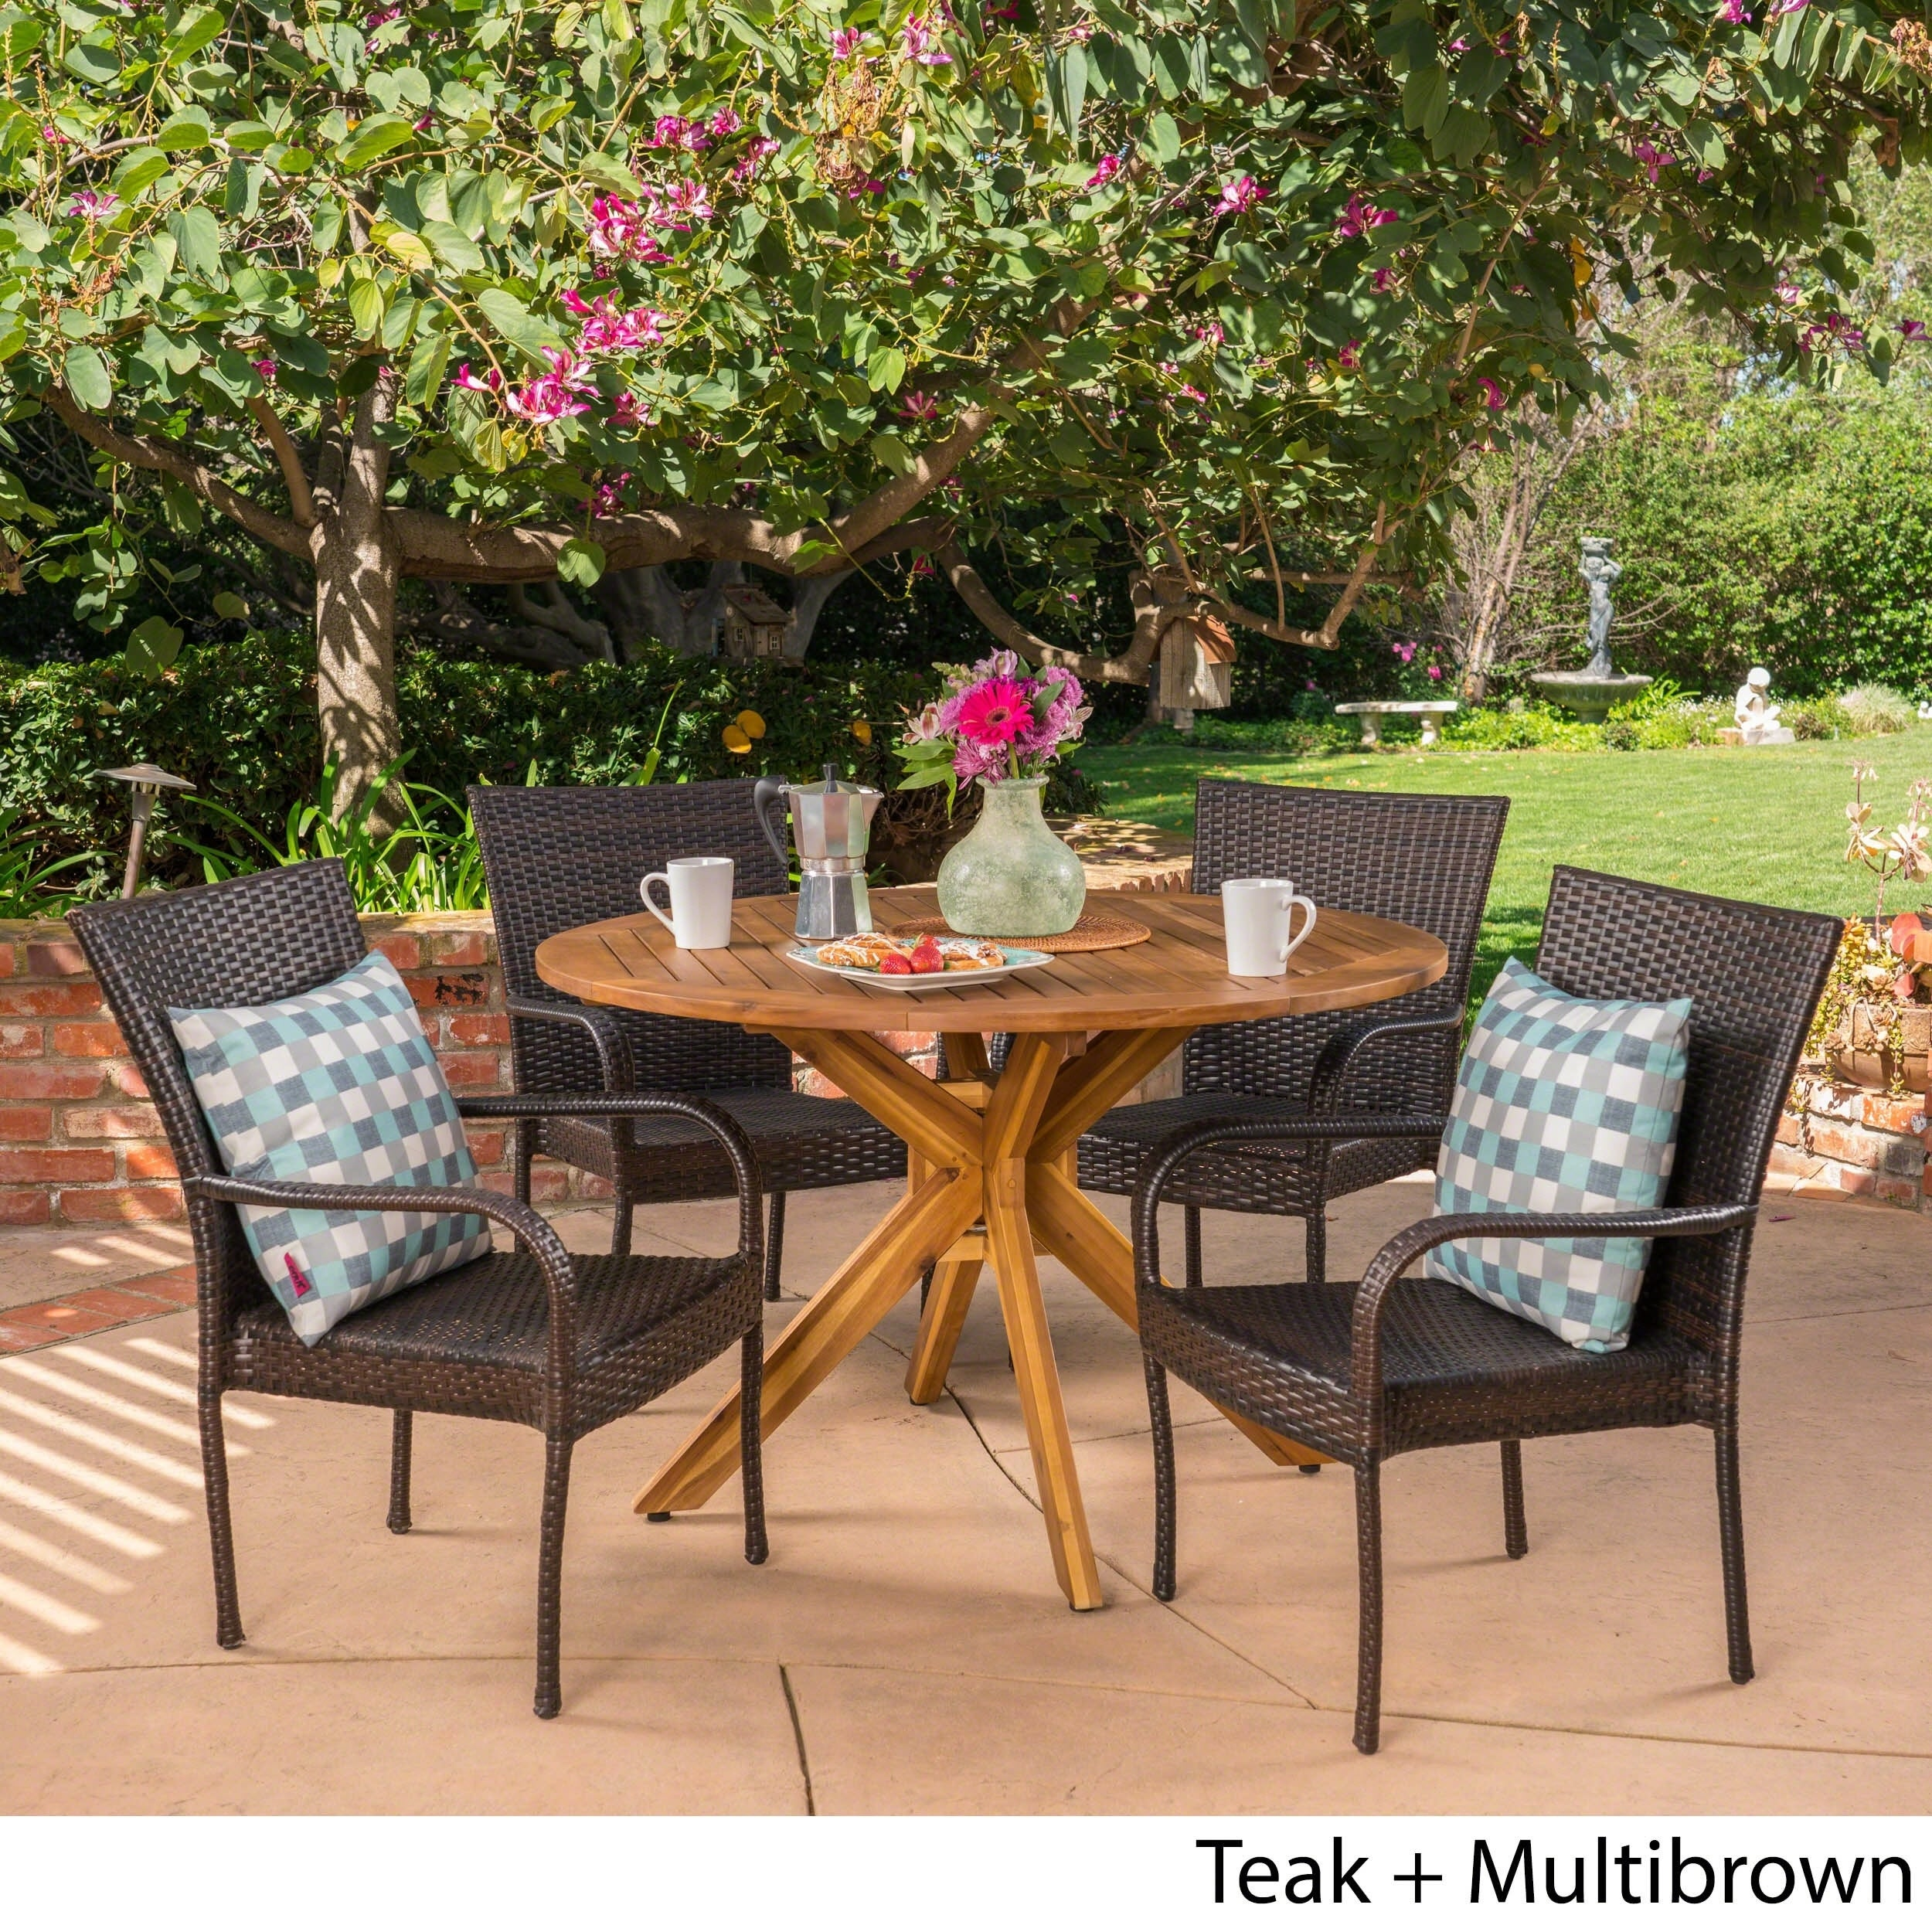 Avoca Outdoor 5 Piece Multibrown Pe Wicker Dining Set With Circular Dining Table By Christopher Knight Home Overstock 21135522